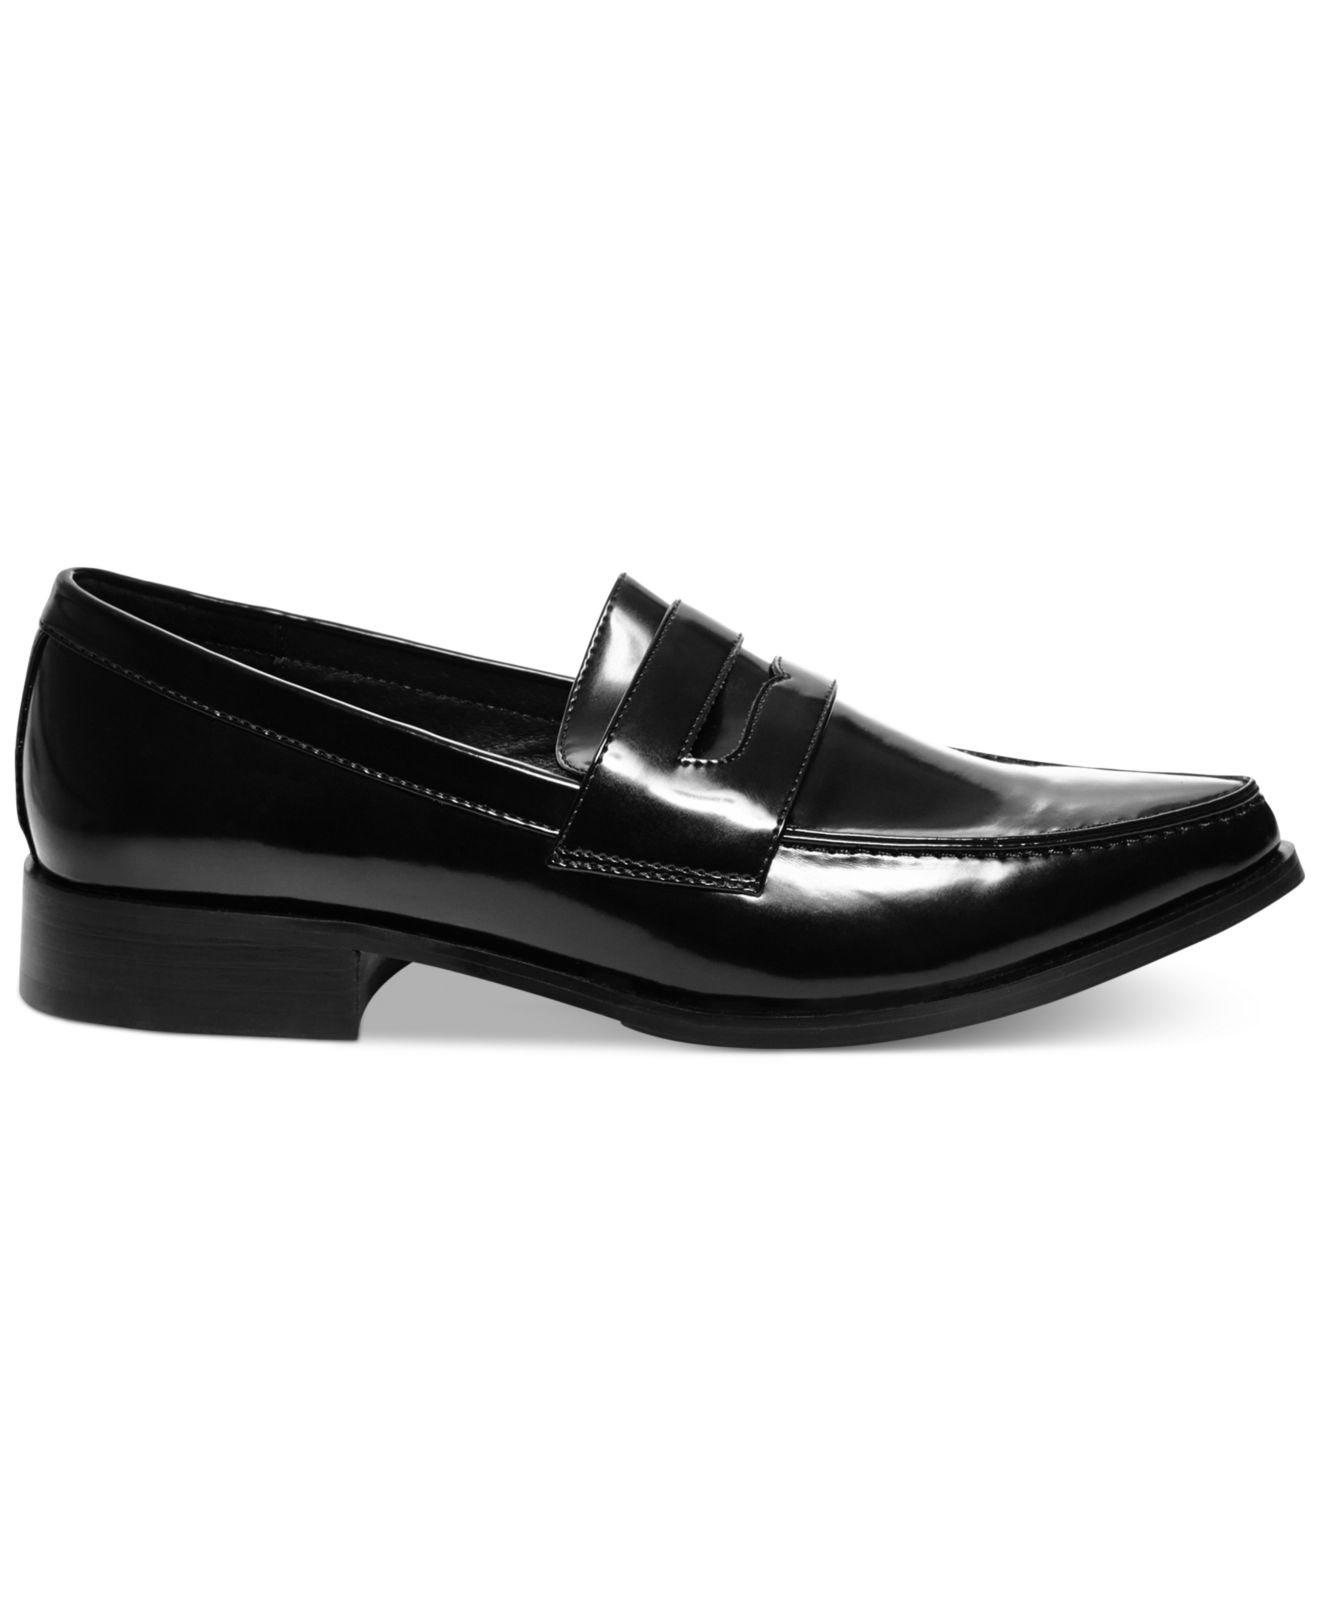 Steve madden Women'S Lindie Loafer Flats in Black | Lyst